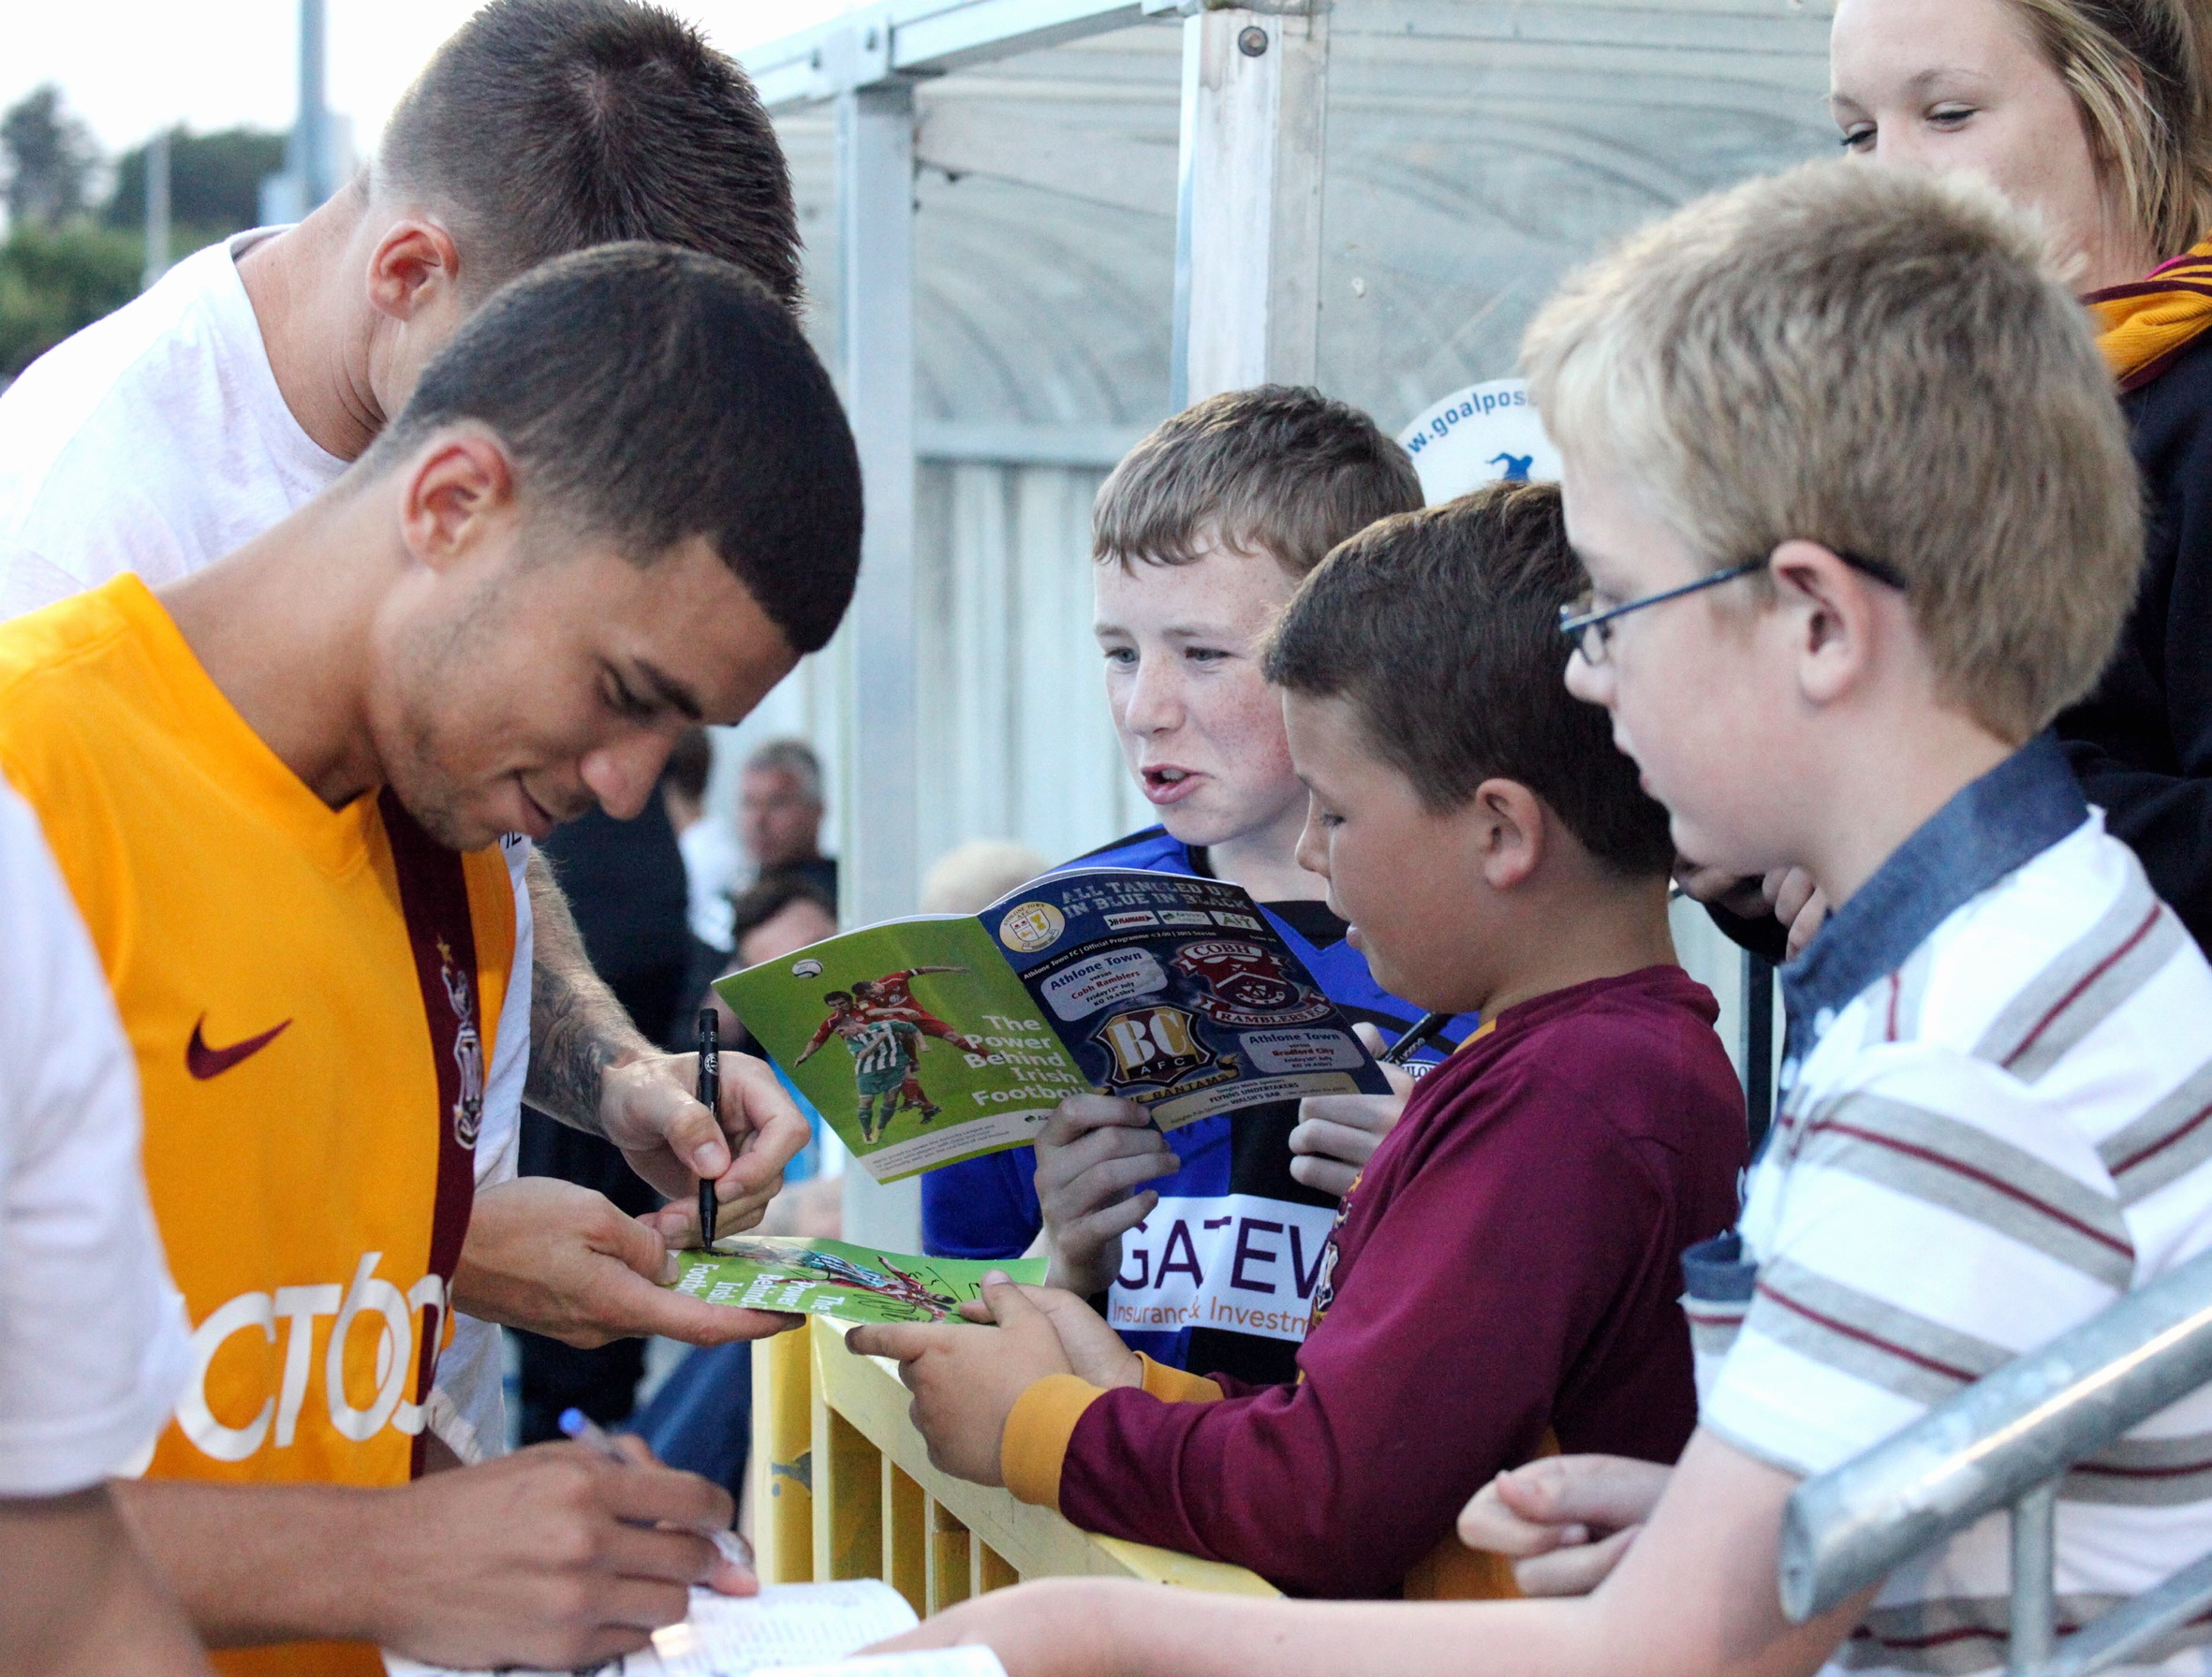 Nahki Wells signs autographs for fans after City's 4-1 victory at Athlone, when he scored the equaliser